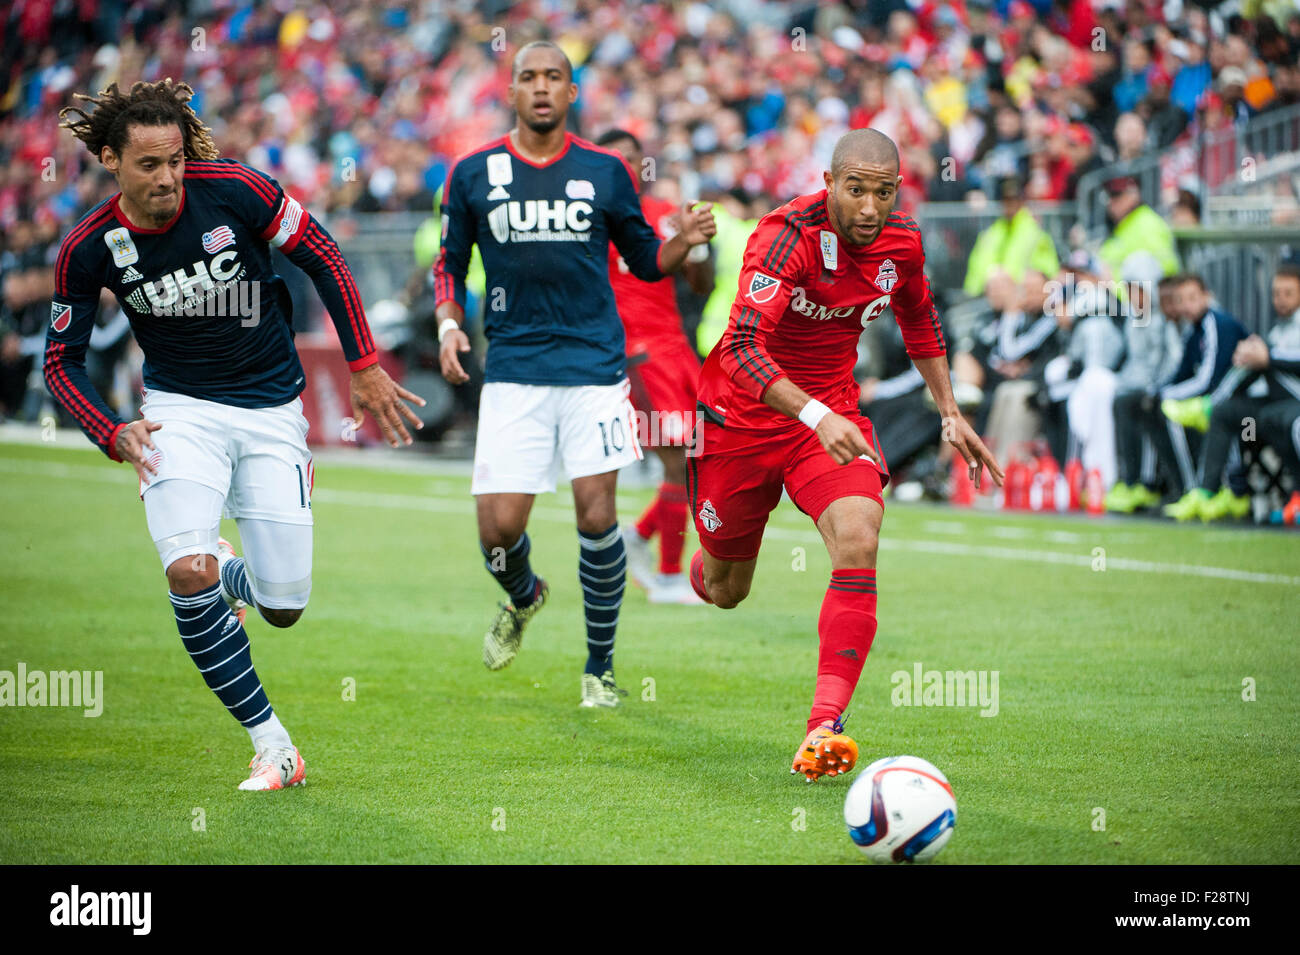 Toronto, Ontario, Canada. 13th September, 2015. Toronto FC defender Justin Morrow  (2) moves past New England Revolution - Stock Image